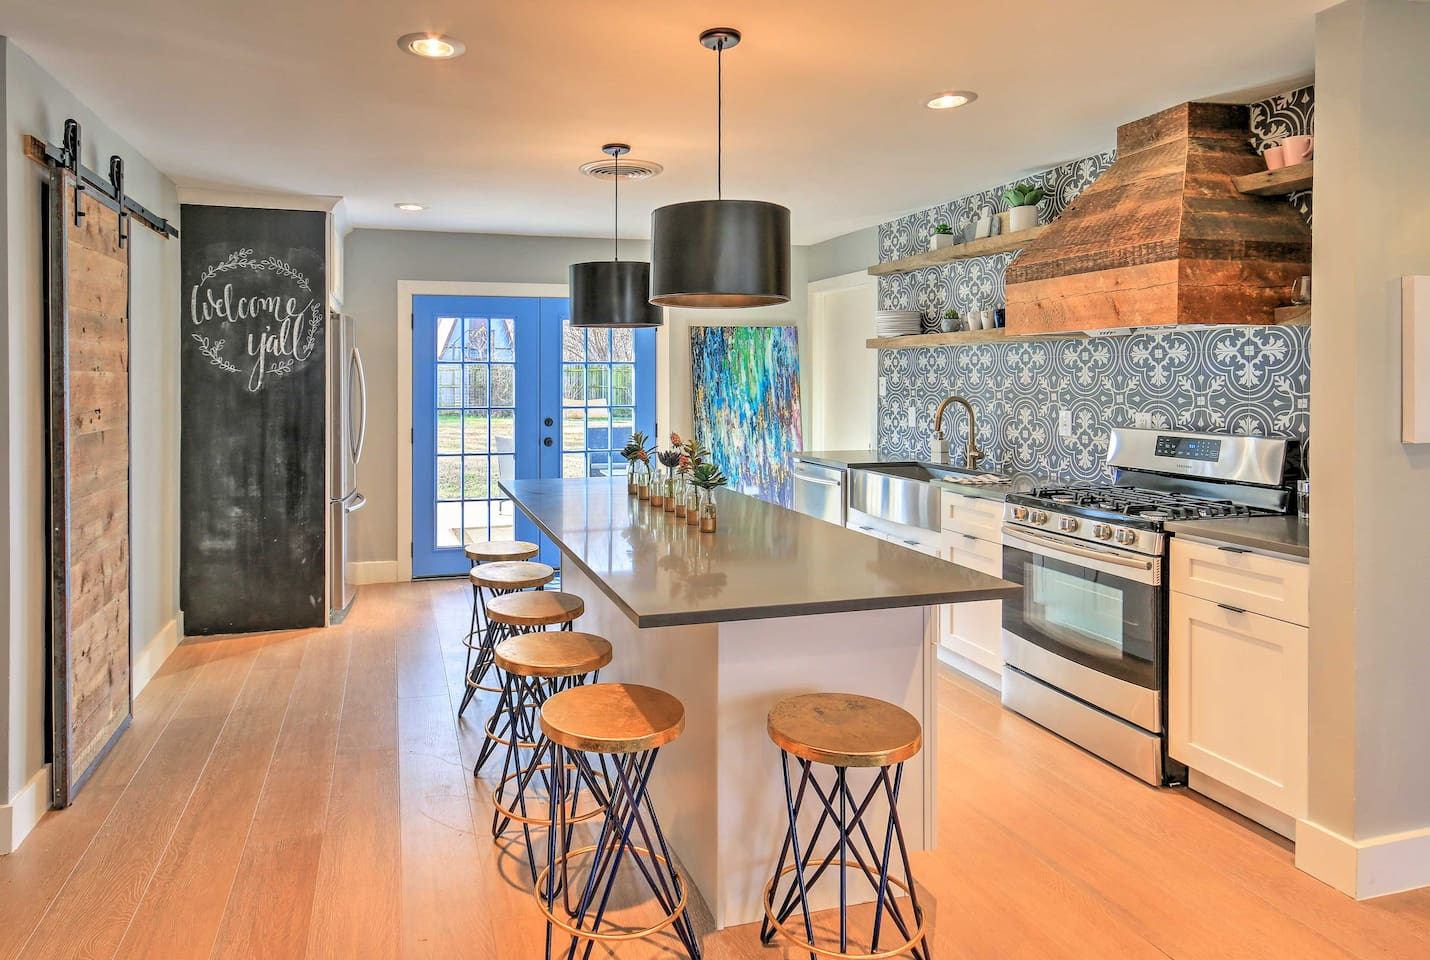 Pack your bags and head to this 4-bedroom, 2-bathroom Forth Worth vacation rental house!